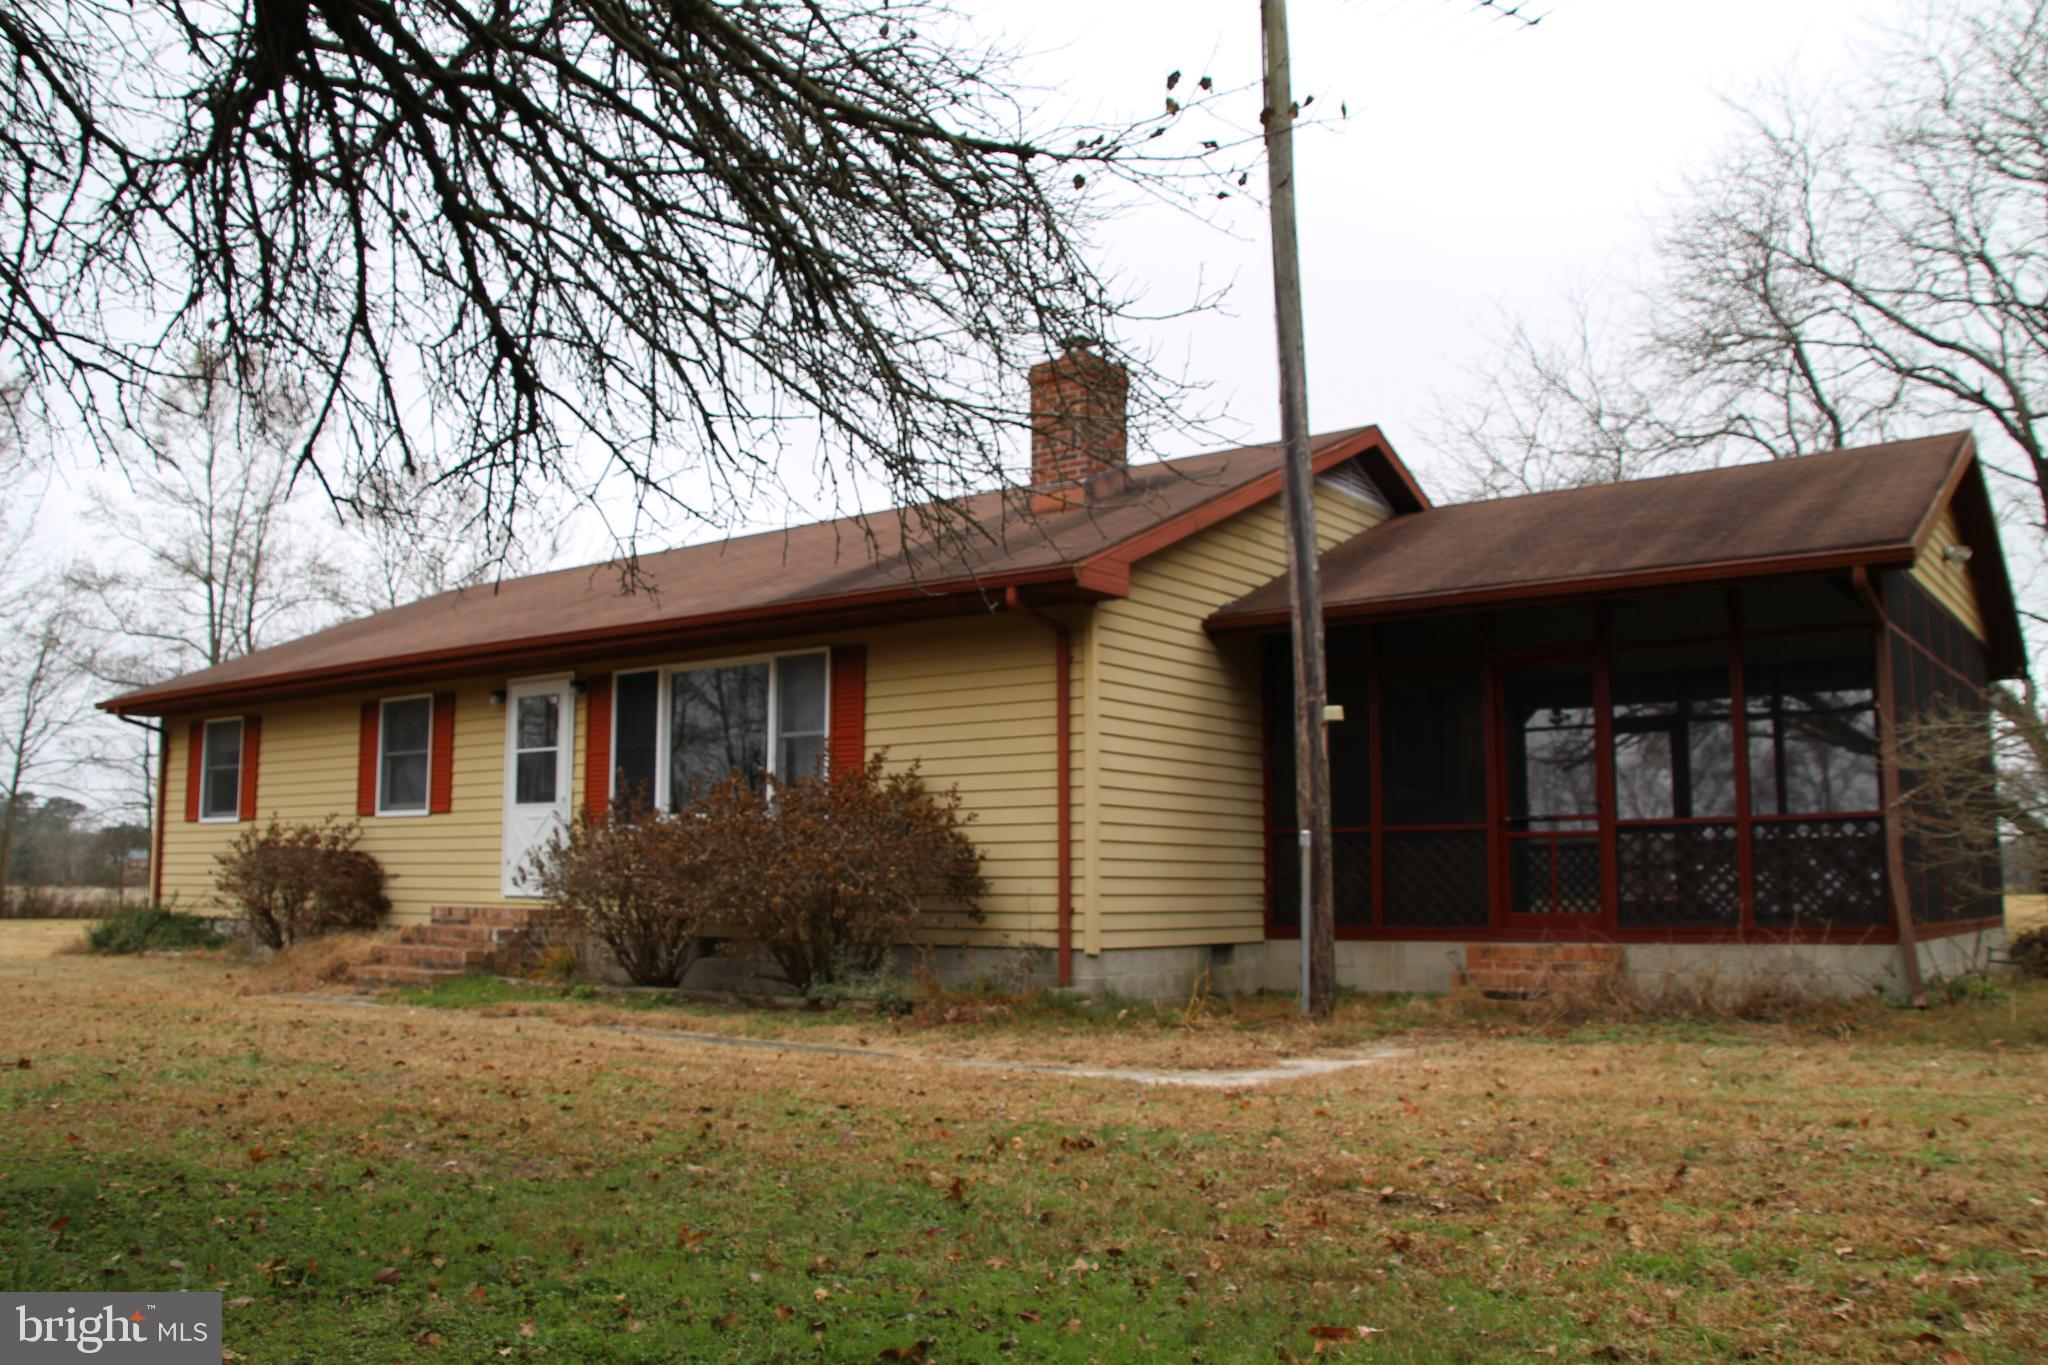 Well-kept Rancher Home on 5+ Acres in the country, but very close to town.